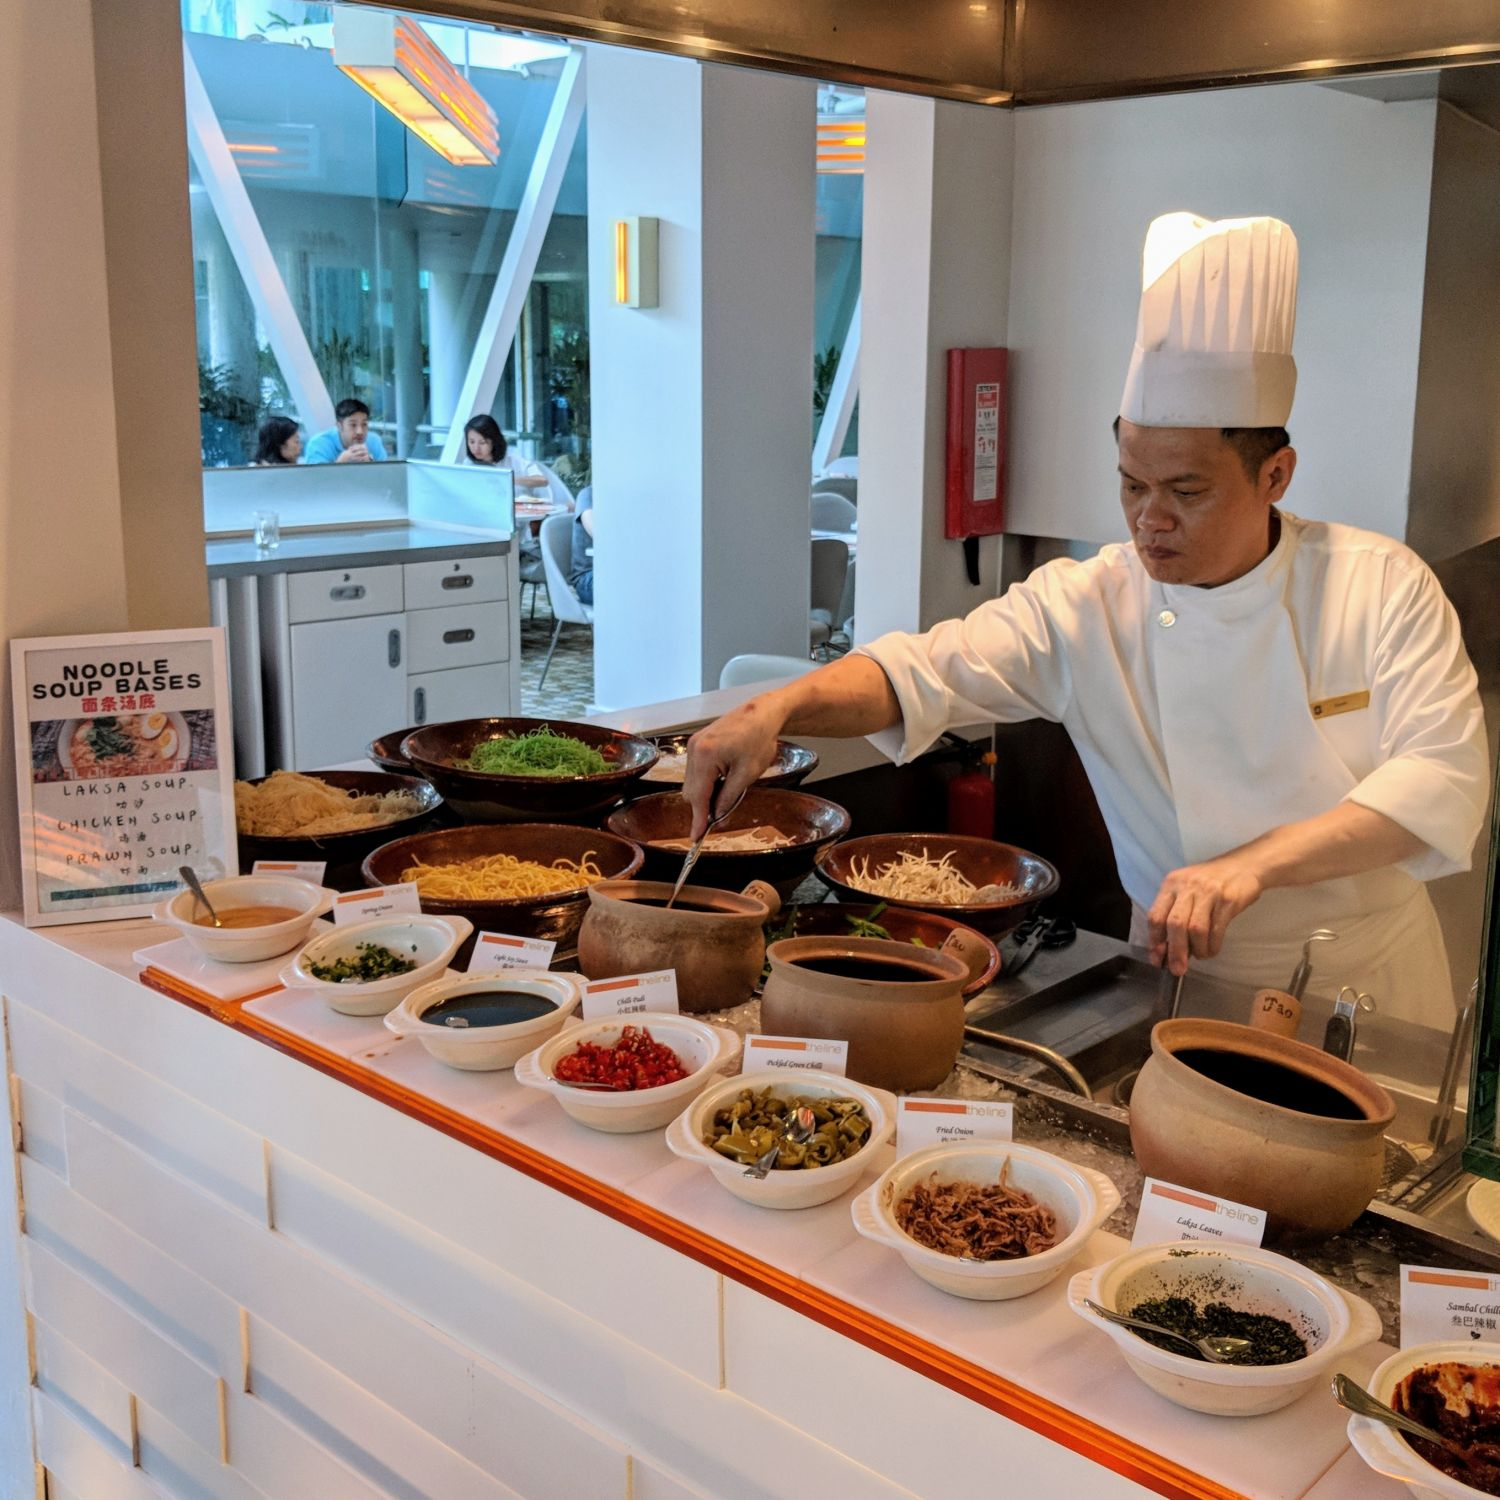 Shangri-La Hotel Singapore The Line Breakfast